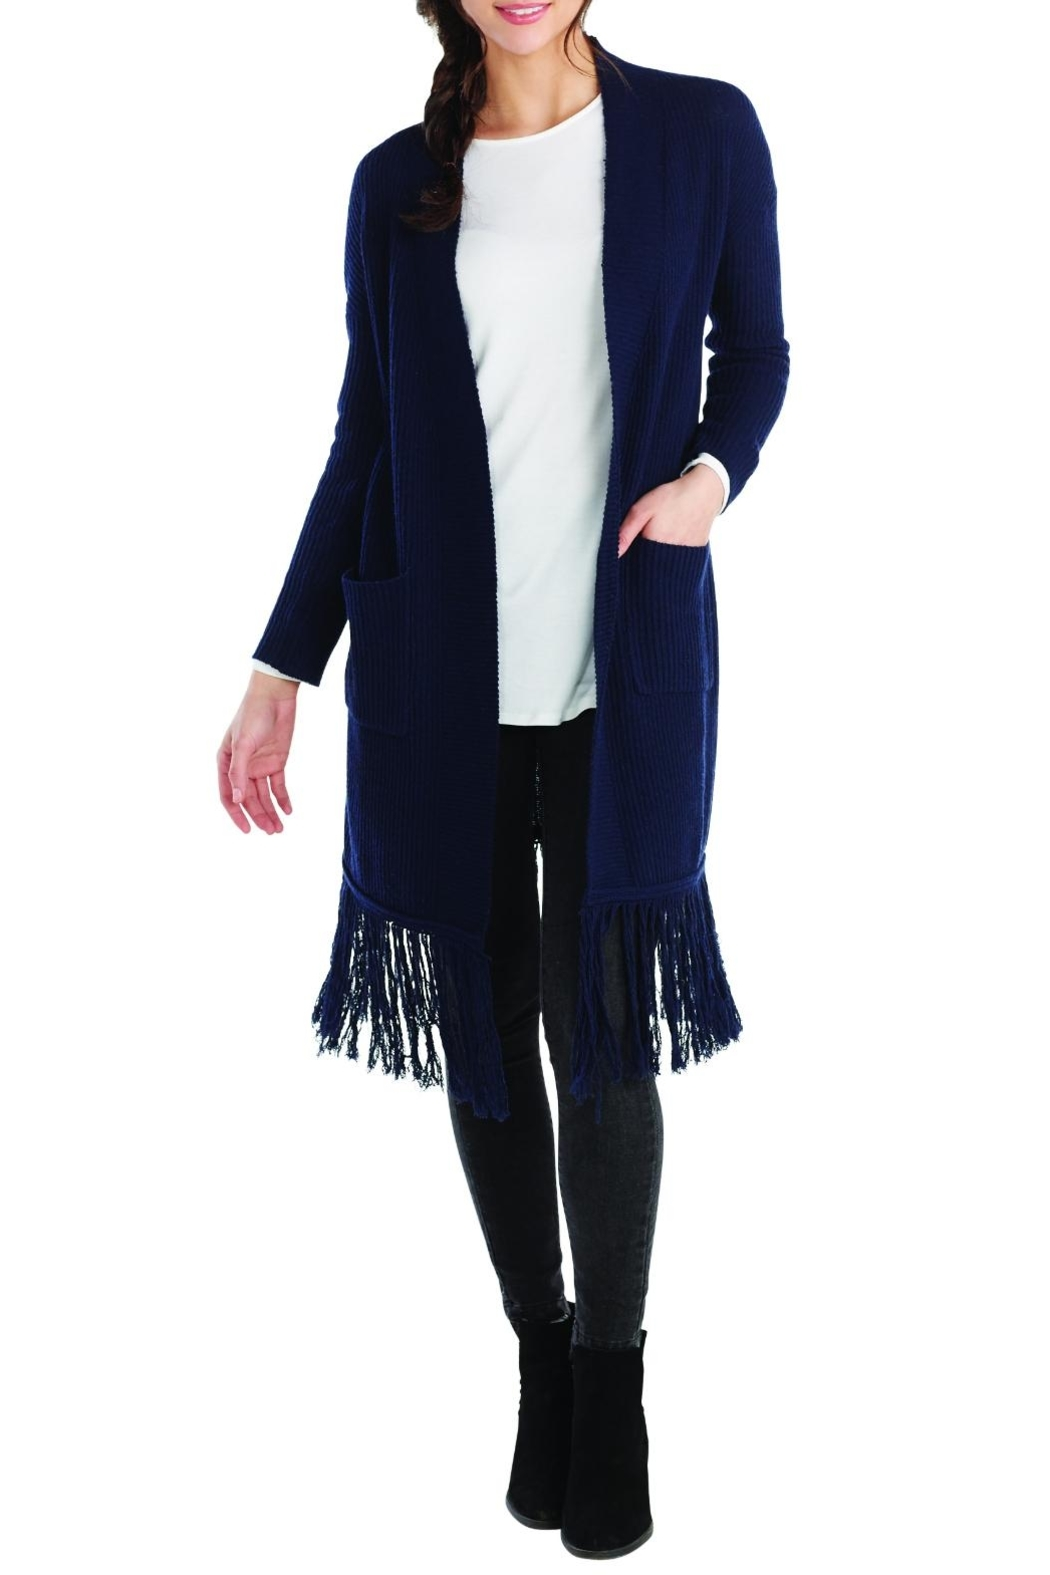 Mud Pie Jagger Fringed Cardigan - Front Full Image